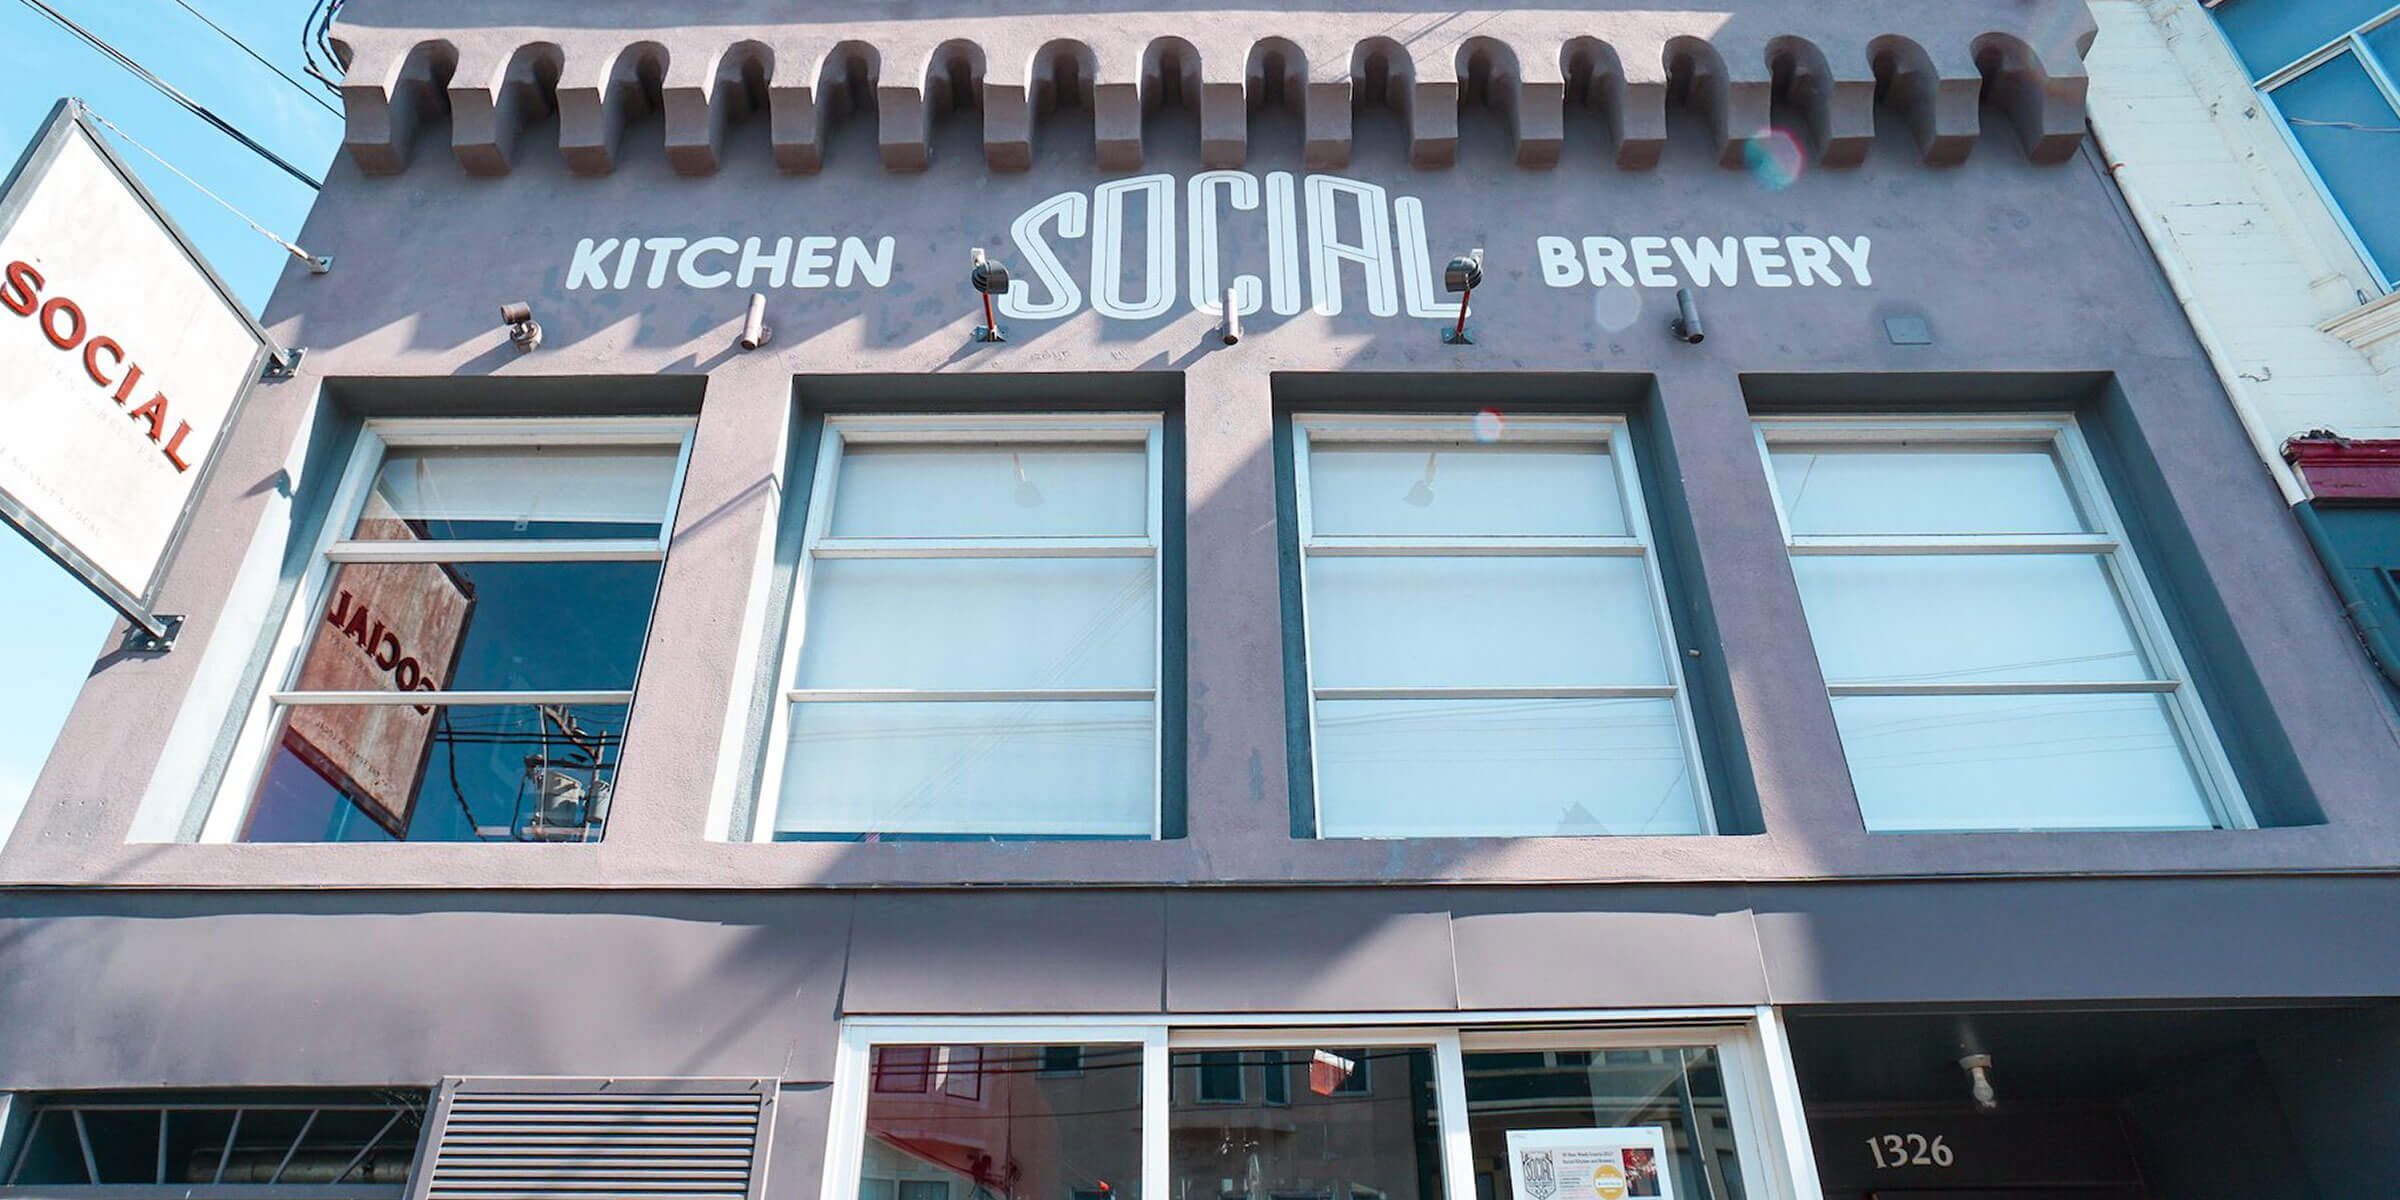 Signage above the entrance to Social Kitchen & Brewery in San Francisco, California